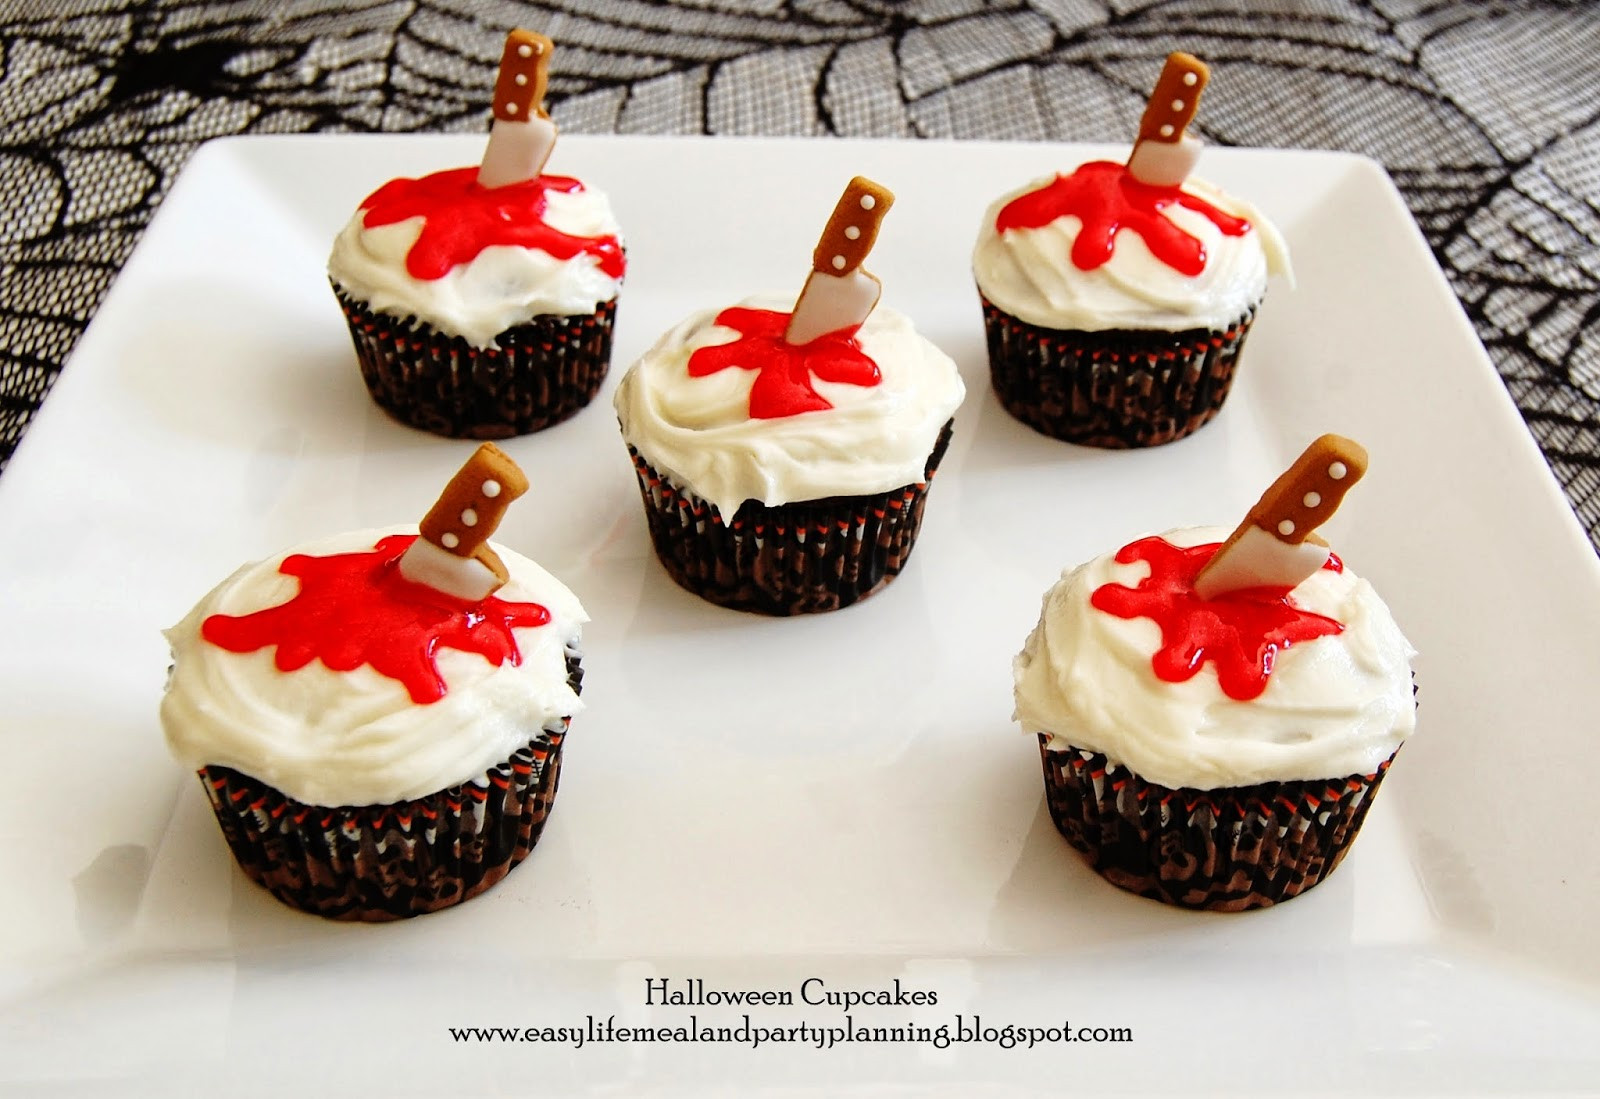 Halloween Cup Cakes  Easy Life Meal and Party Planning October 2013